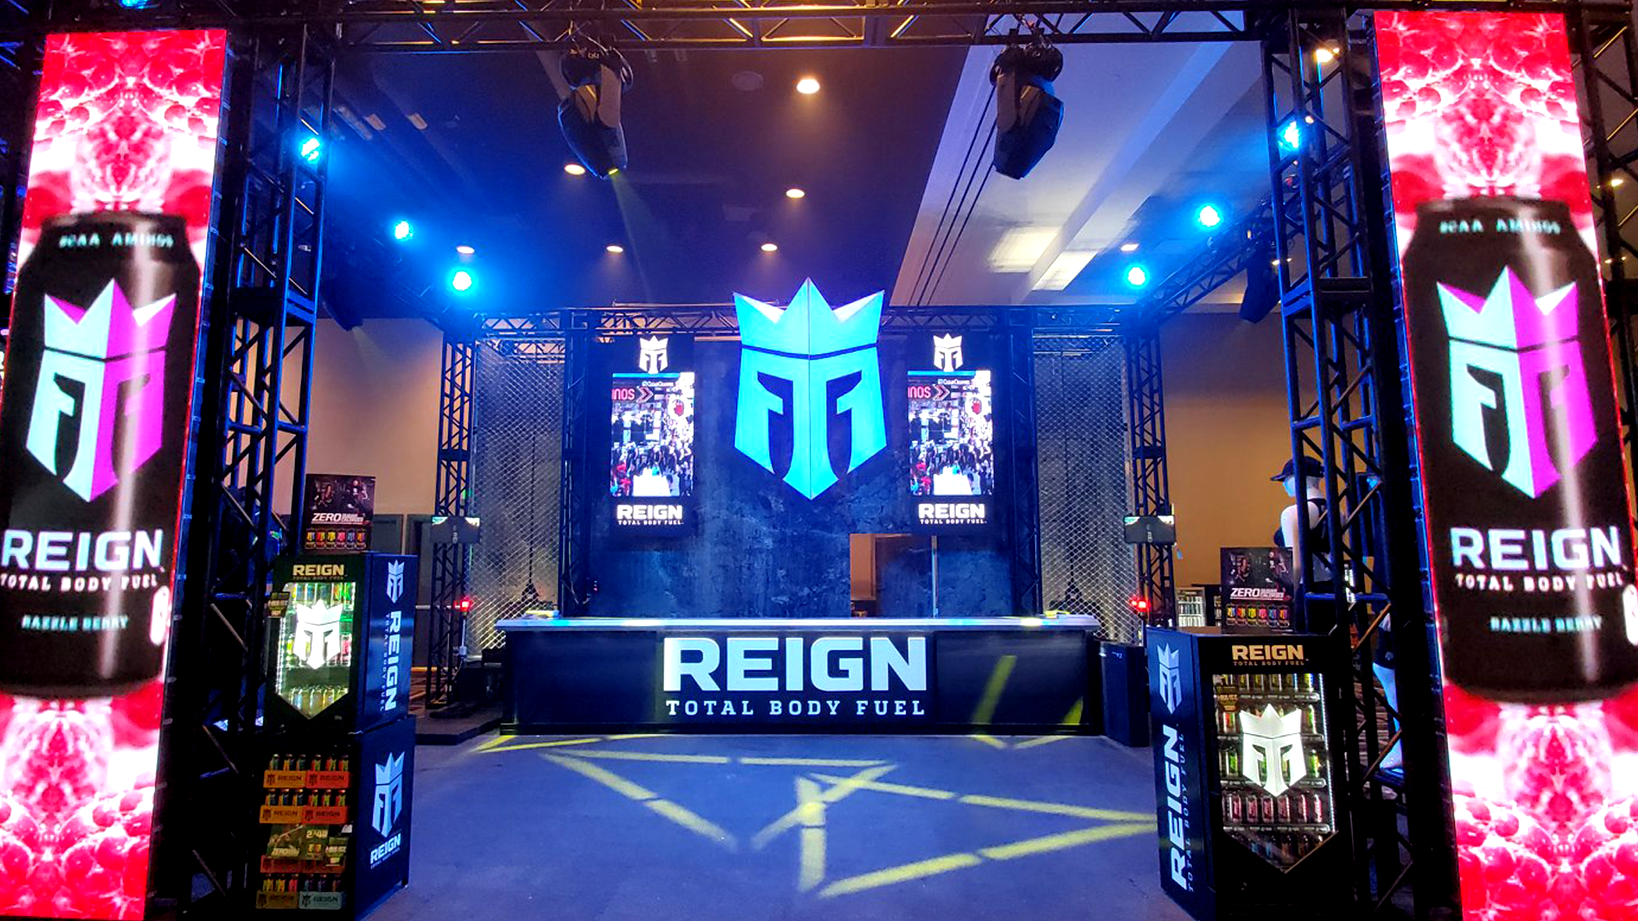 The Reign trade show booth